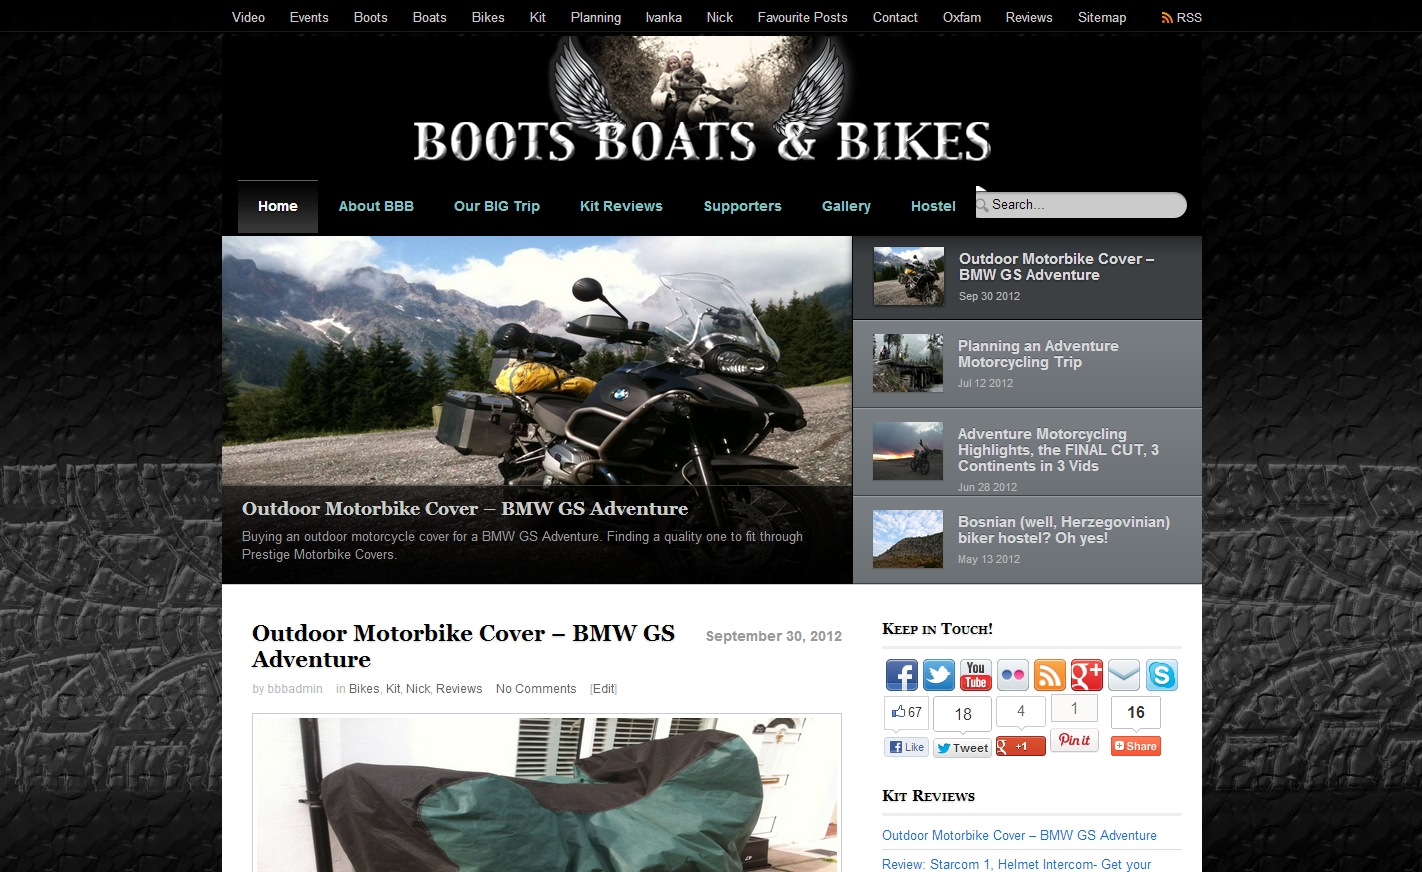 Boots, Boats and Bikes - More than just adventure motorcycling